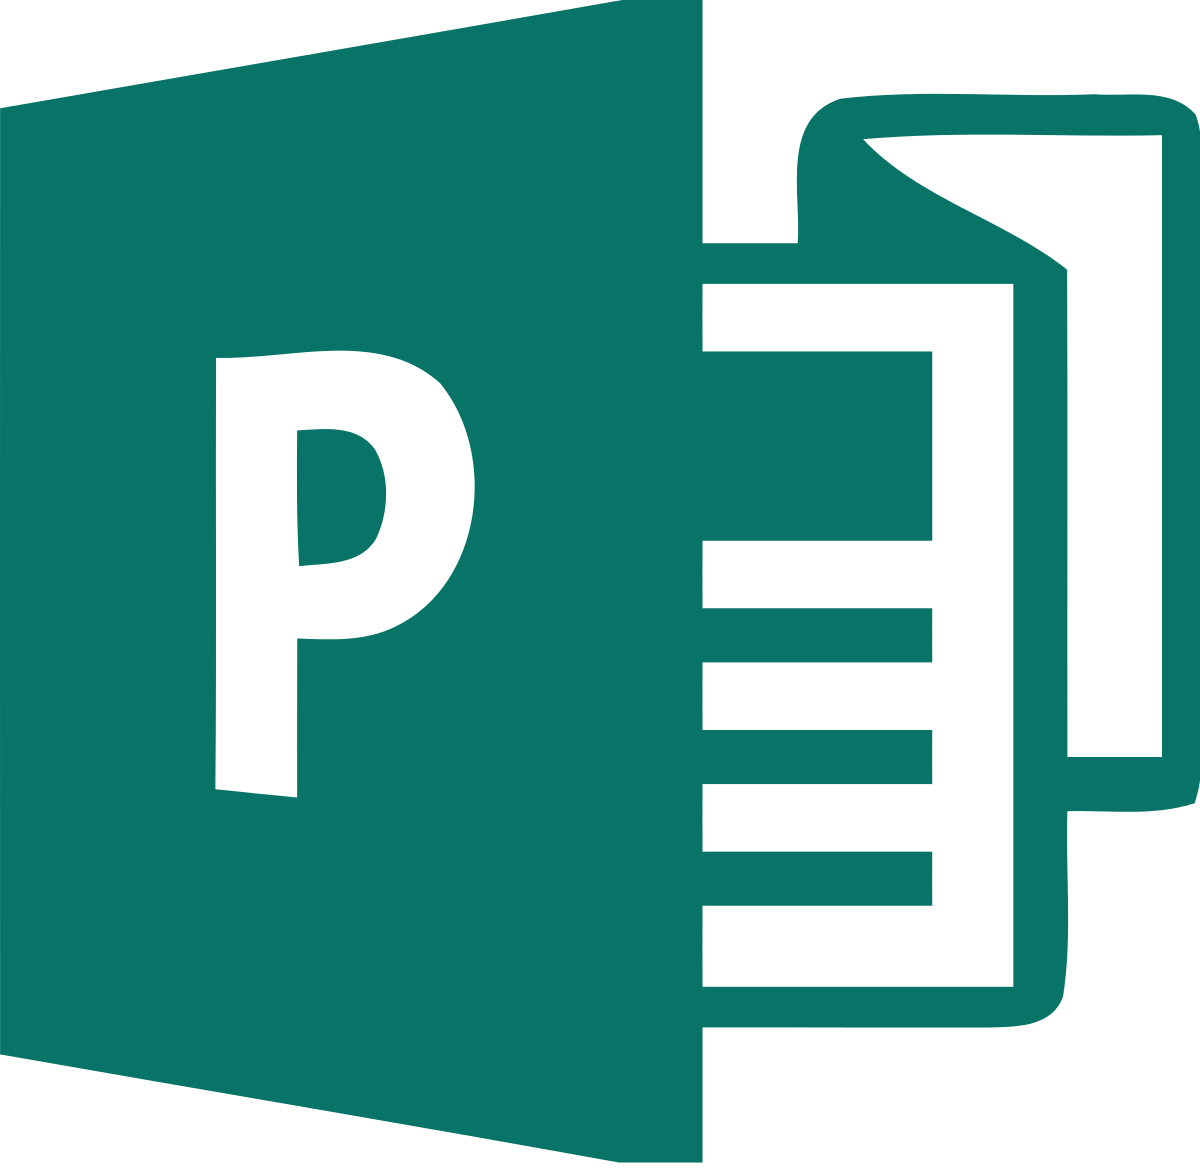 Microsoft publisher wikipedia . Clipart word 2013 office